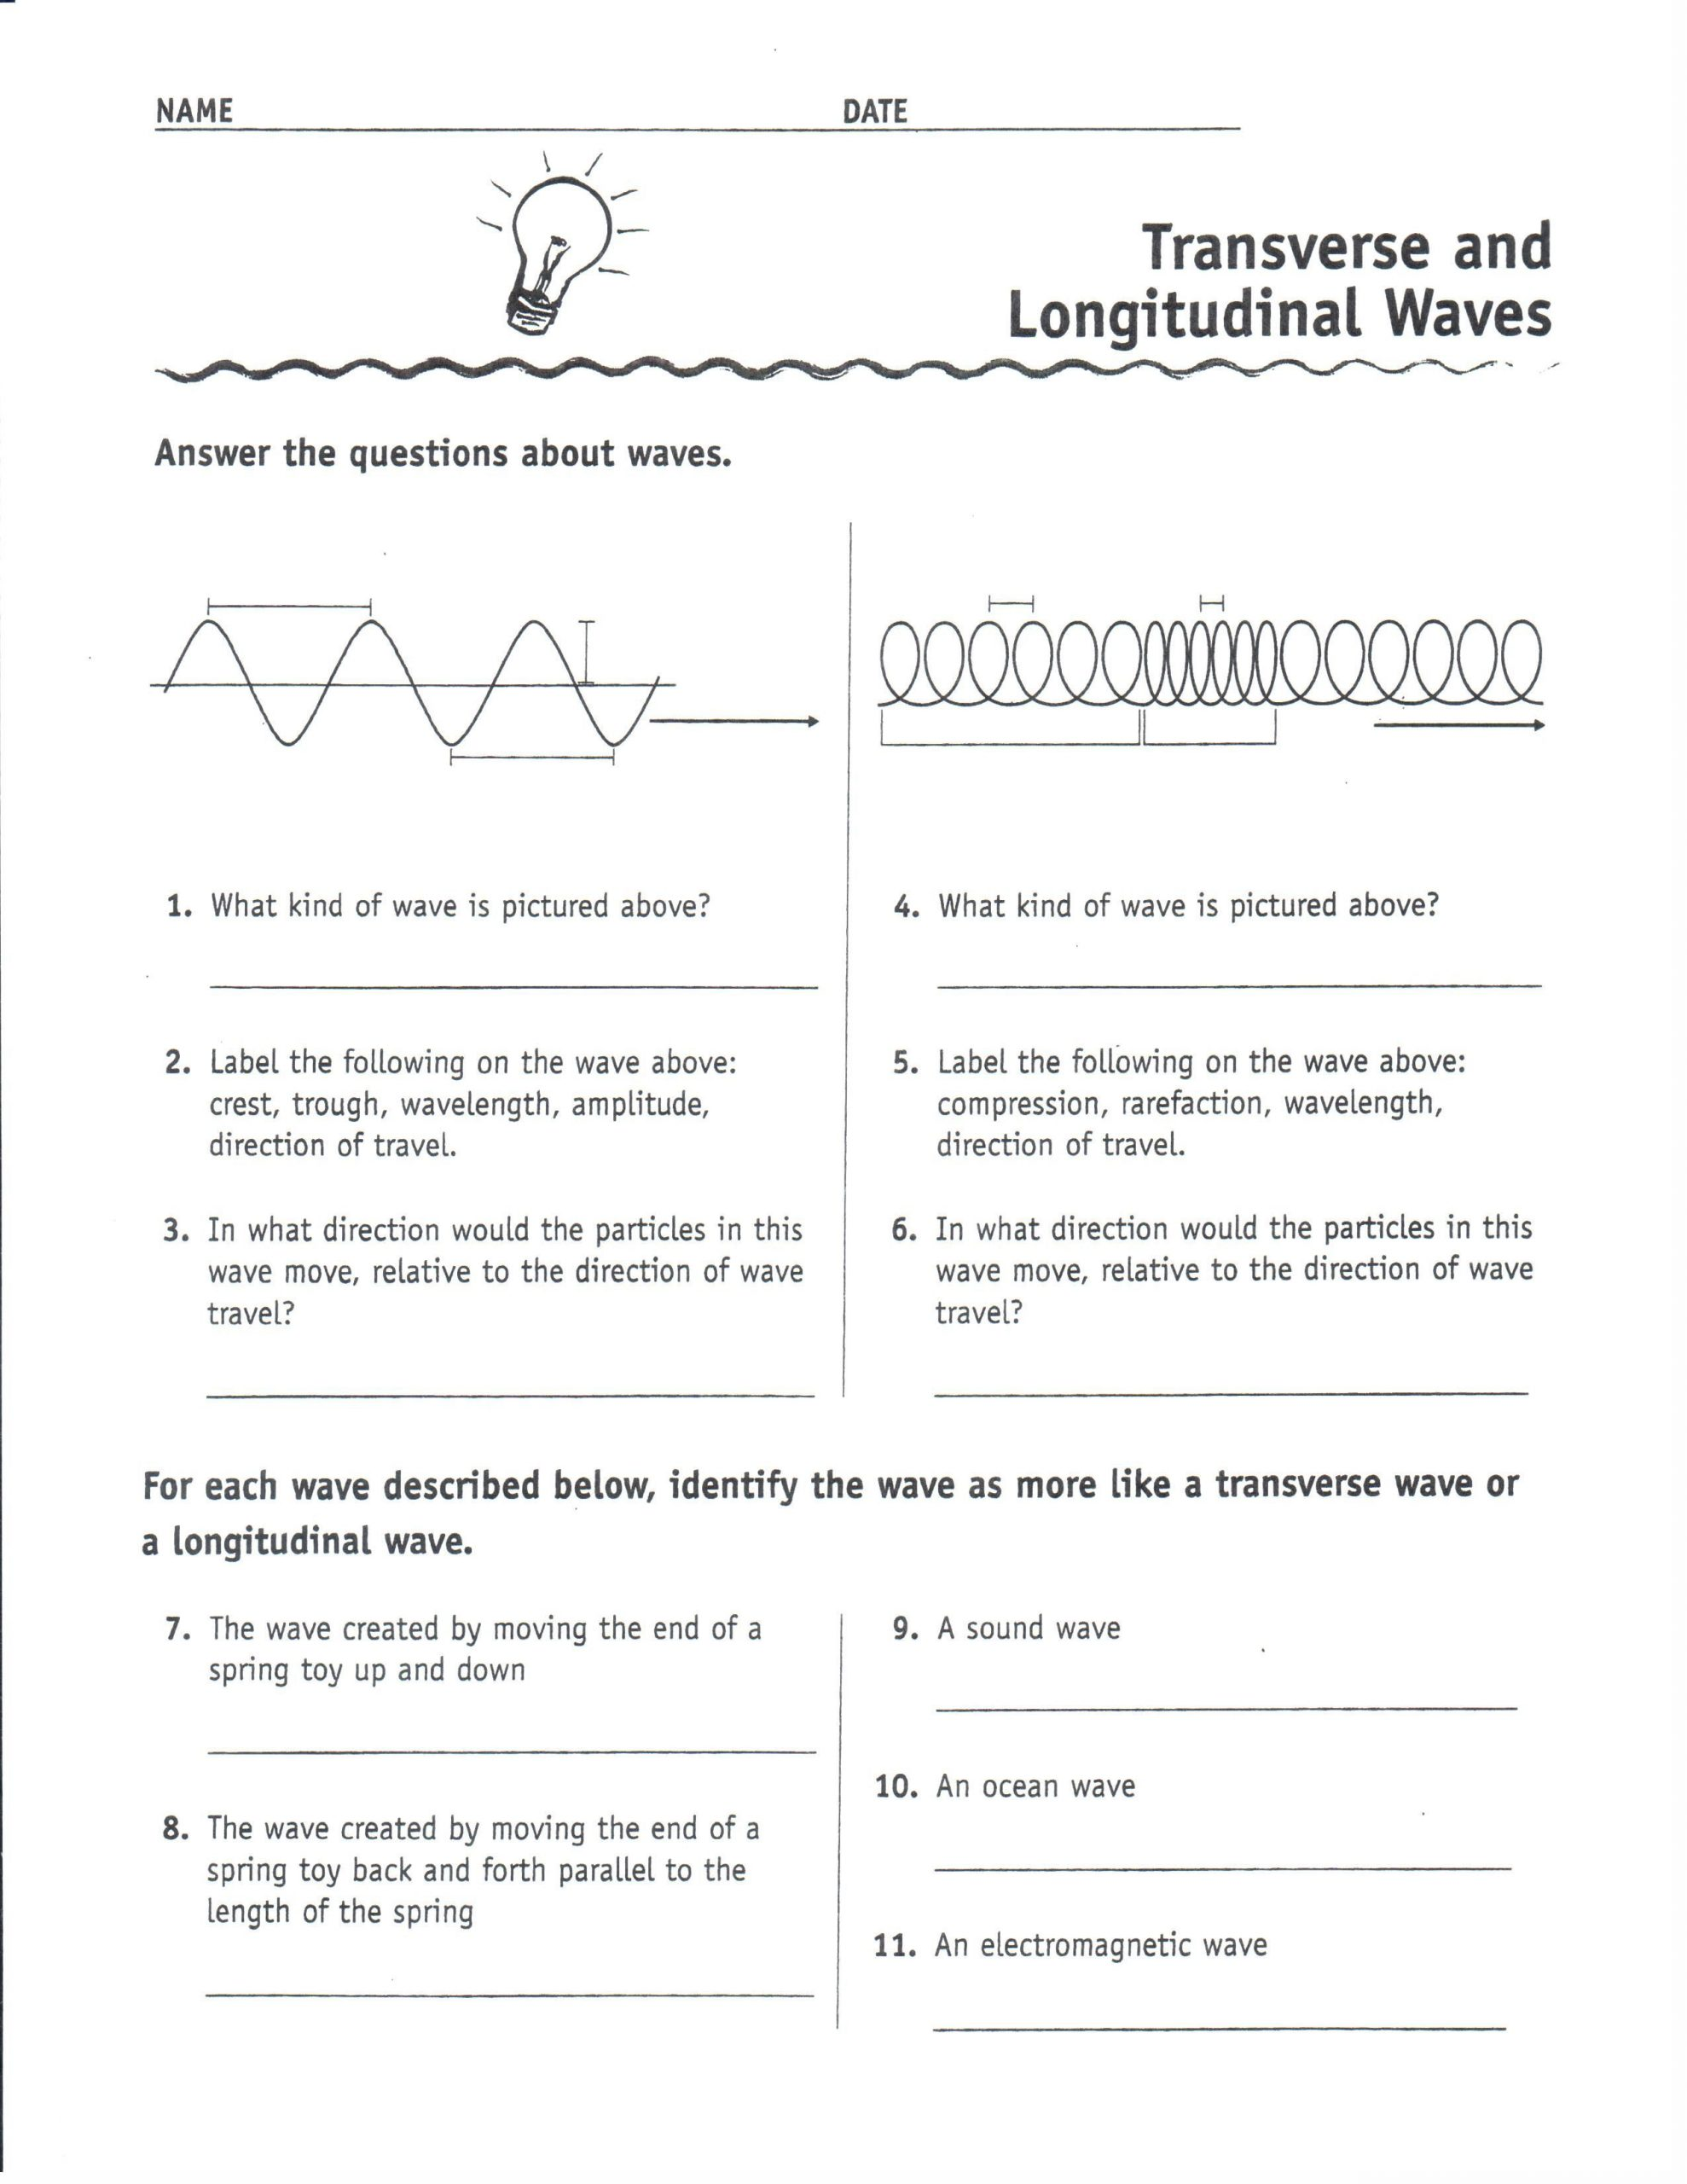 Sound Waves Worksheet Middle School Physical Science Transverse and Longitudinal Waves 1uyxl0i